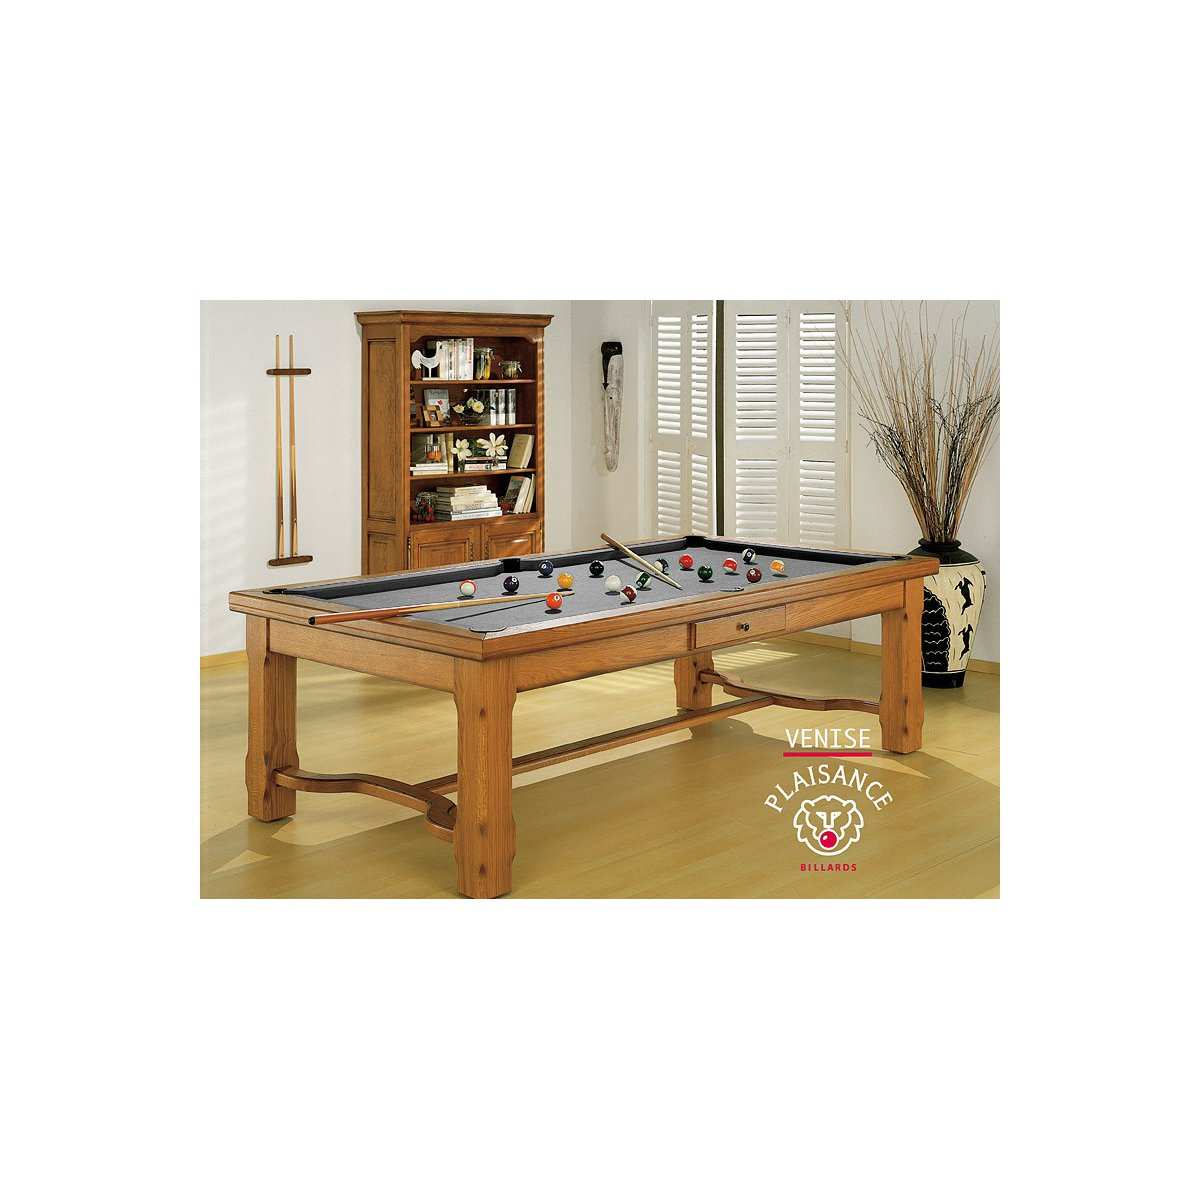 Billard table a manger venise prestige - Billard et table a manger ...